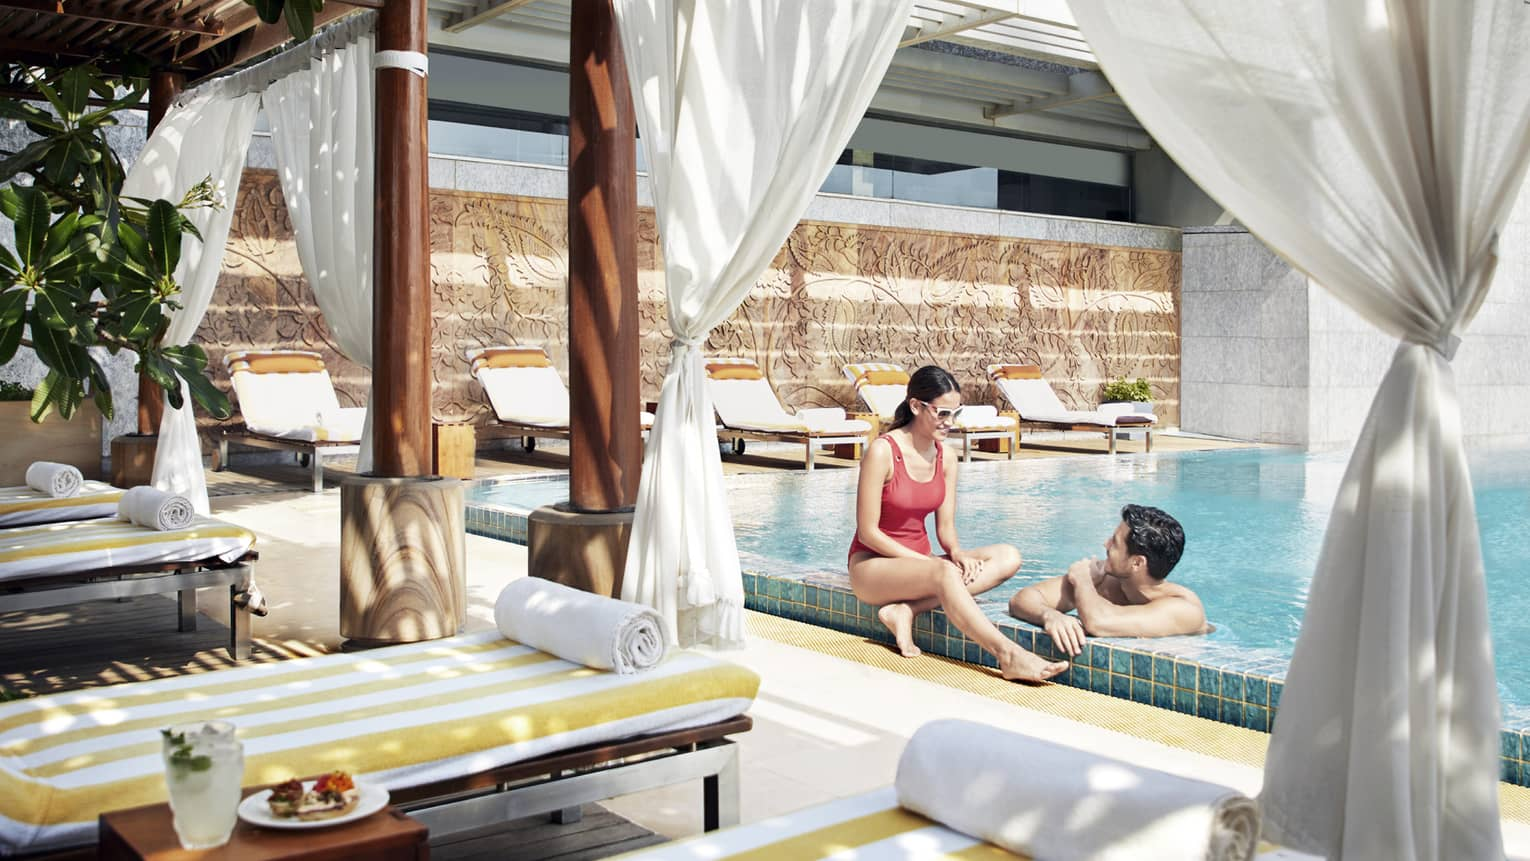 A couple lounges in the pool near a shaded cabana with fresh fruit